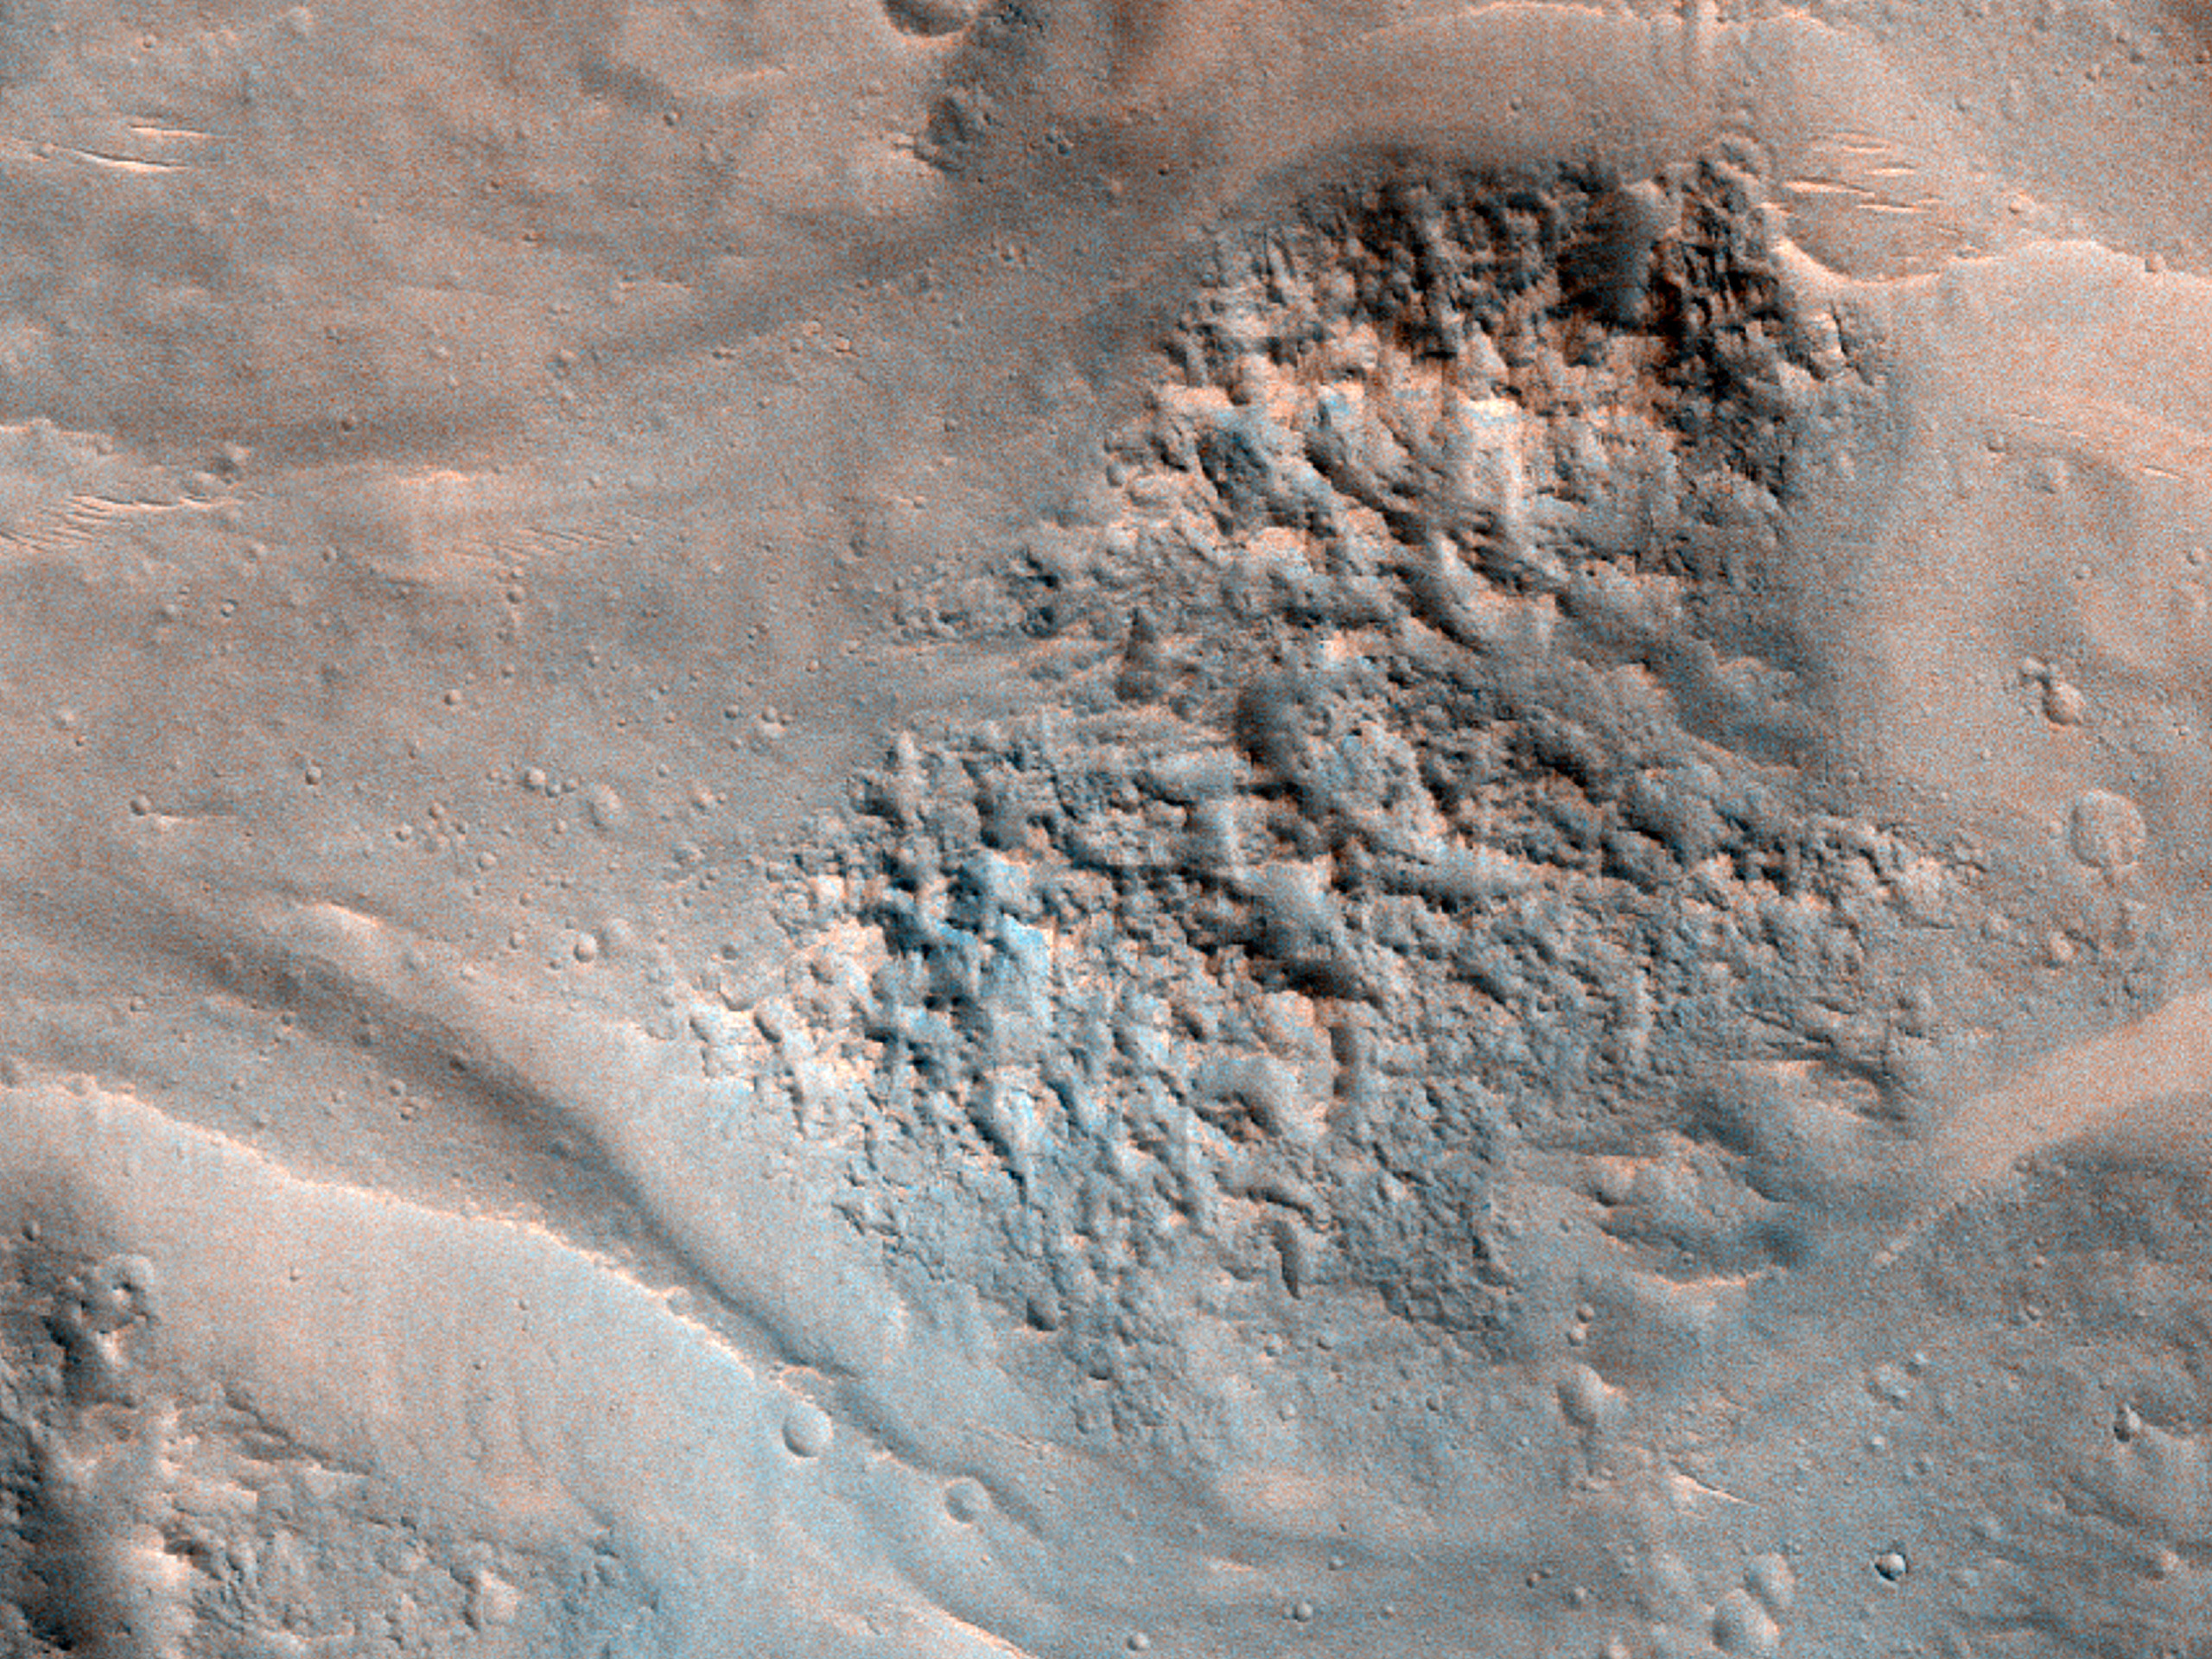 Flows in Crater near Amenthes Region